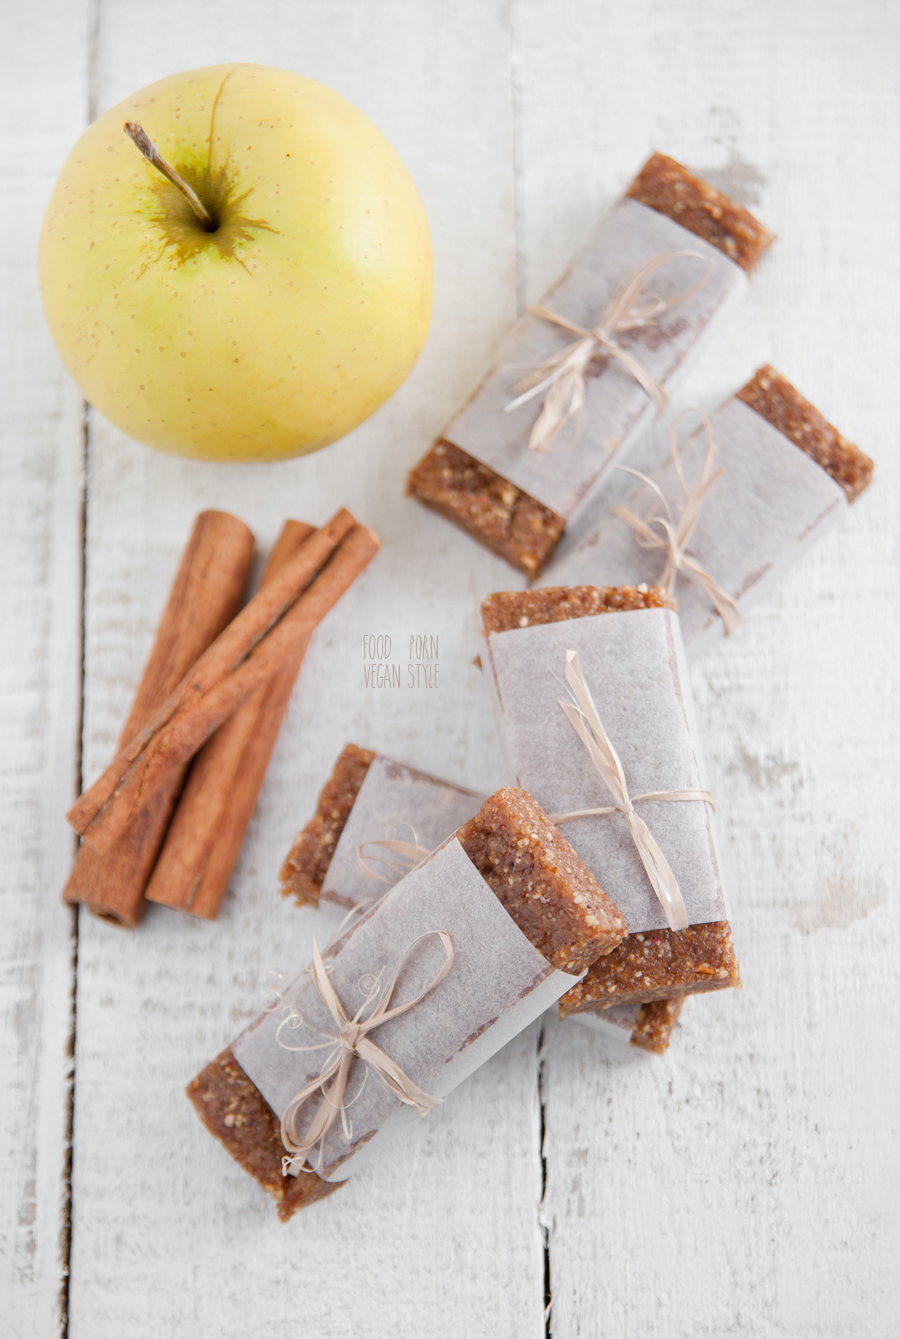 Homemade vegan energy bars, apple with cinnamon